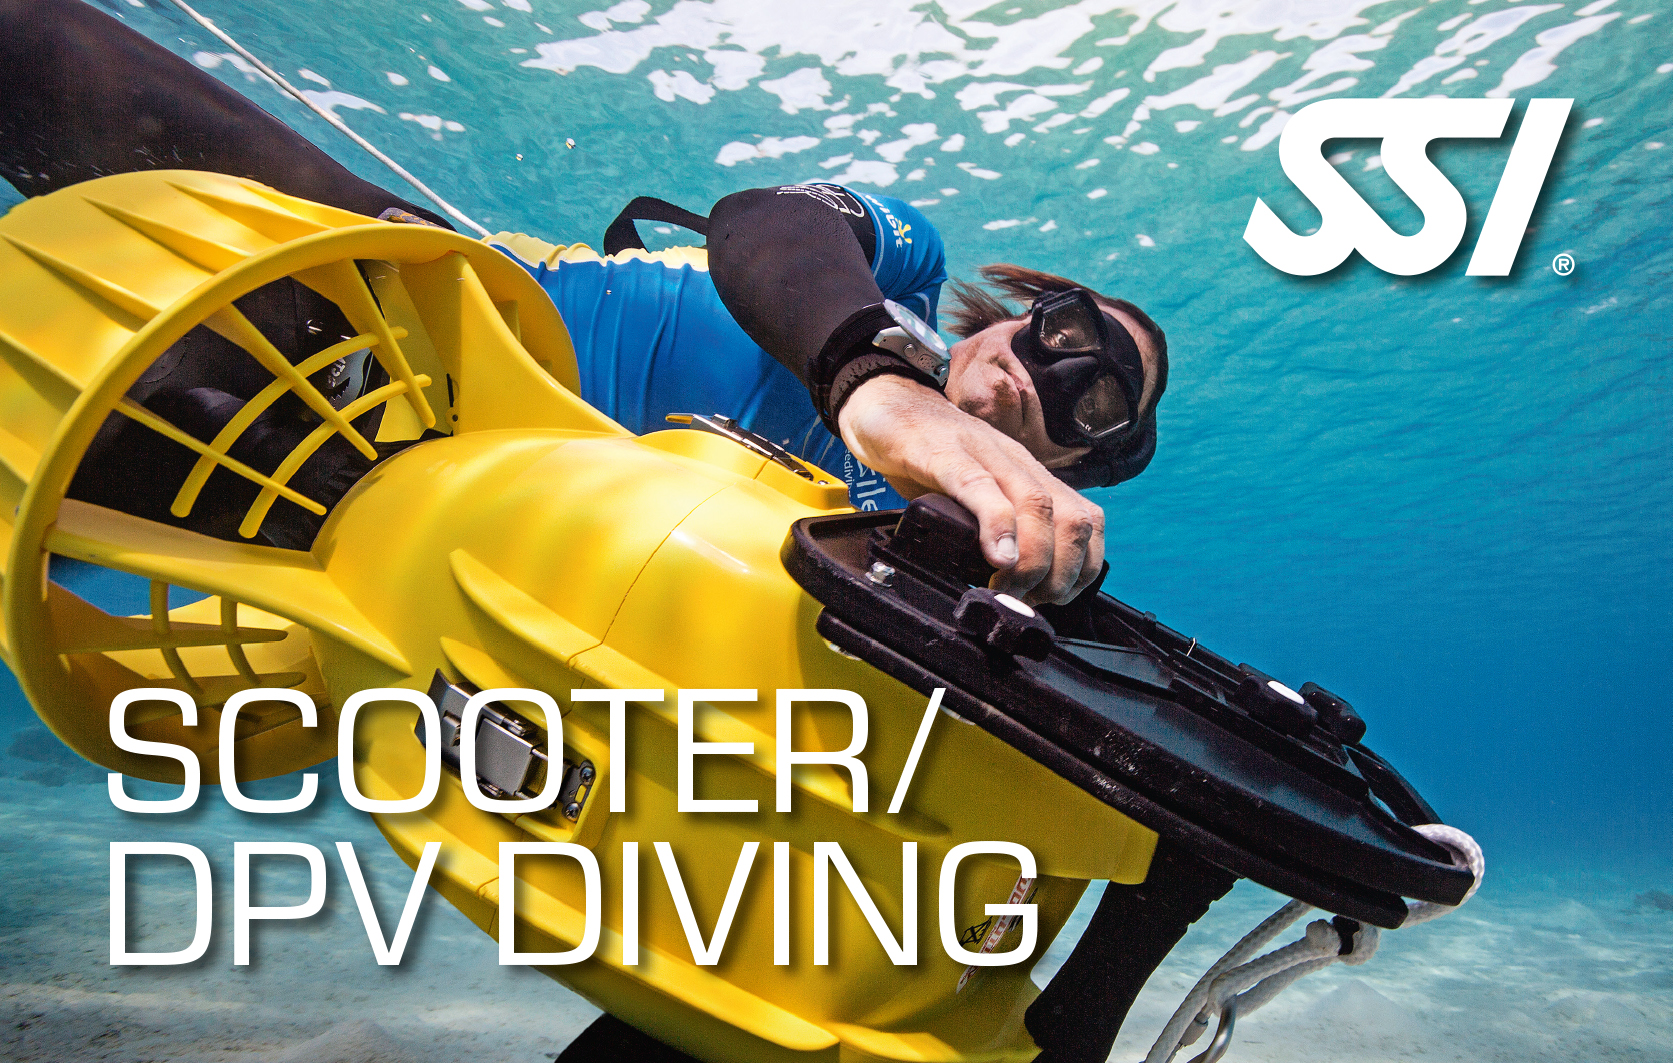 Scooter dpv diving